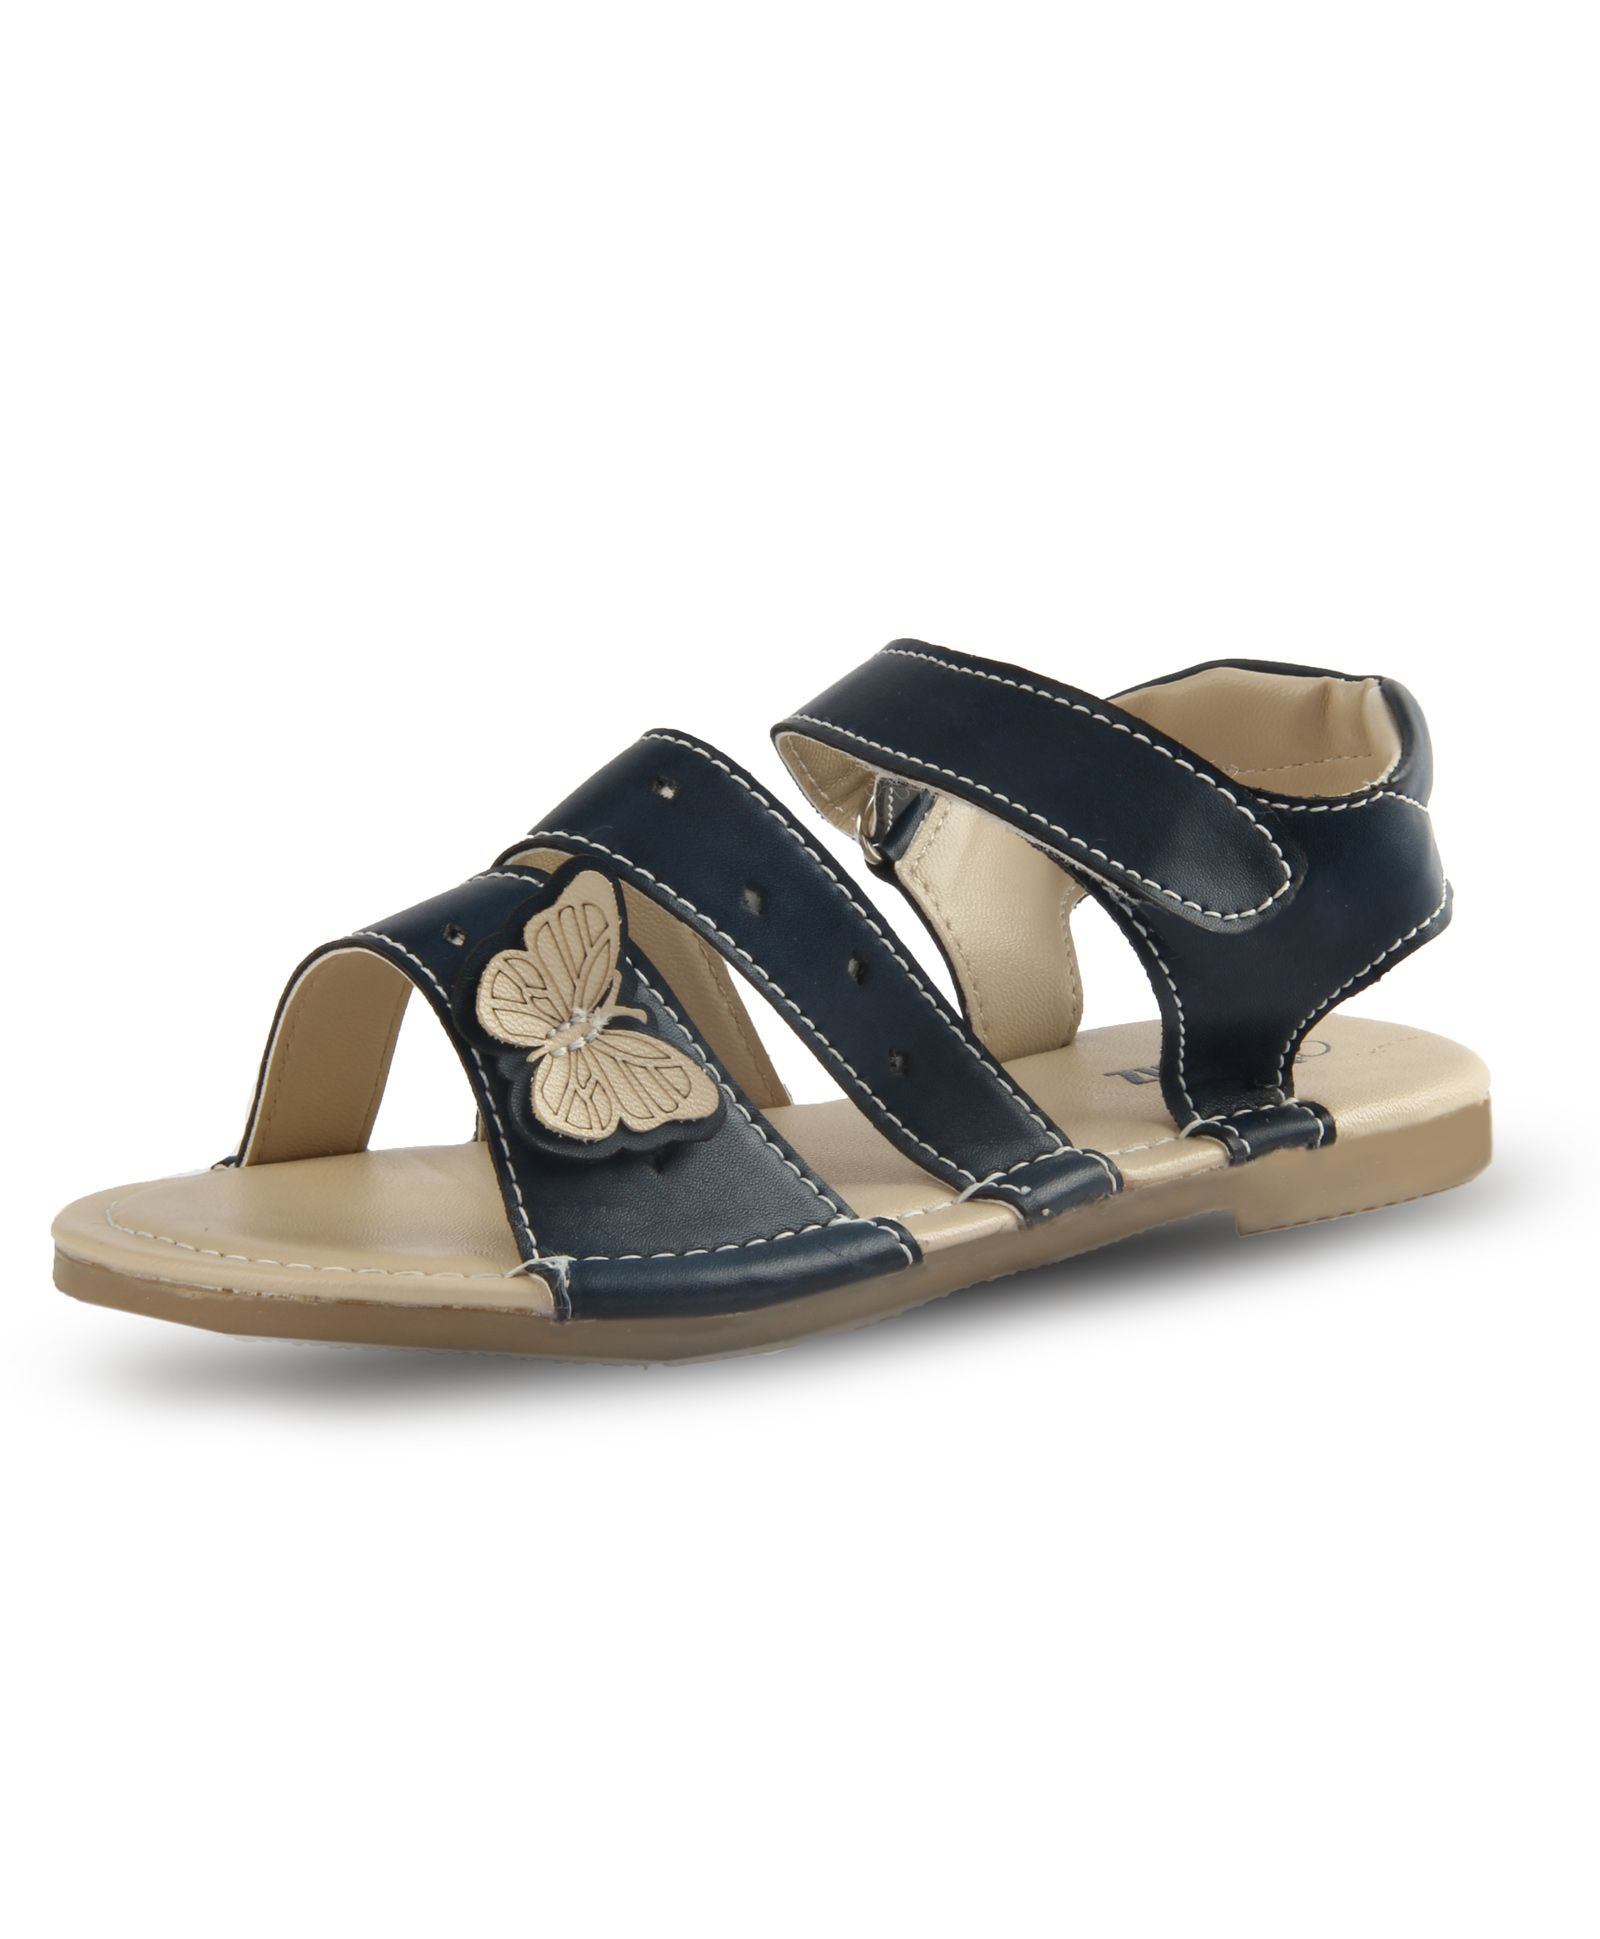 Big Fun For Little Footwear!! Min 40-70% Off On Kids Footwear By Firstcry | Beanz Sandals With Velcro Closure Butterfly Applique - Navy Blue @ Rs.519.60